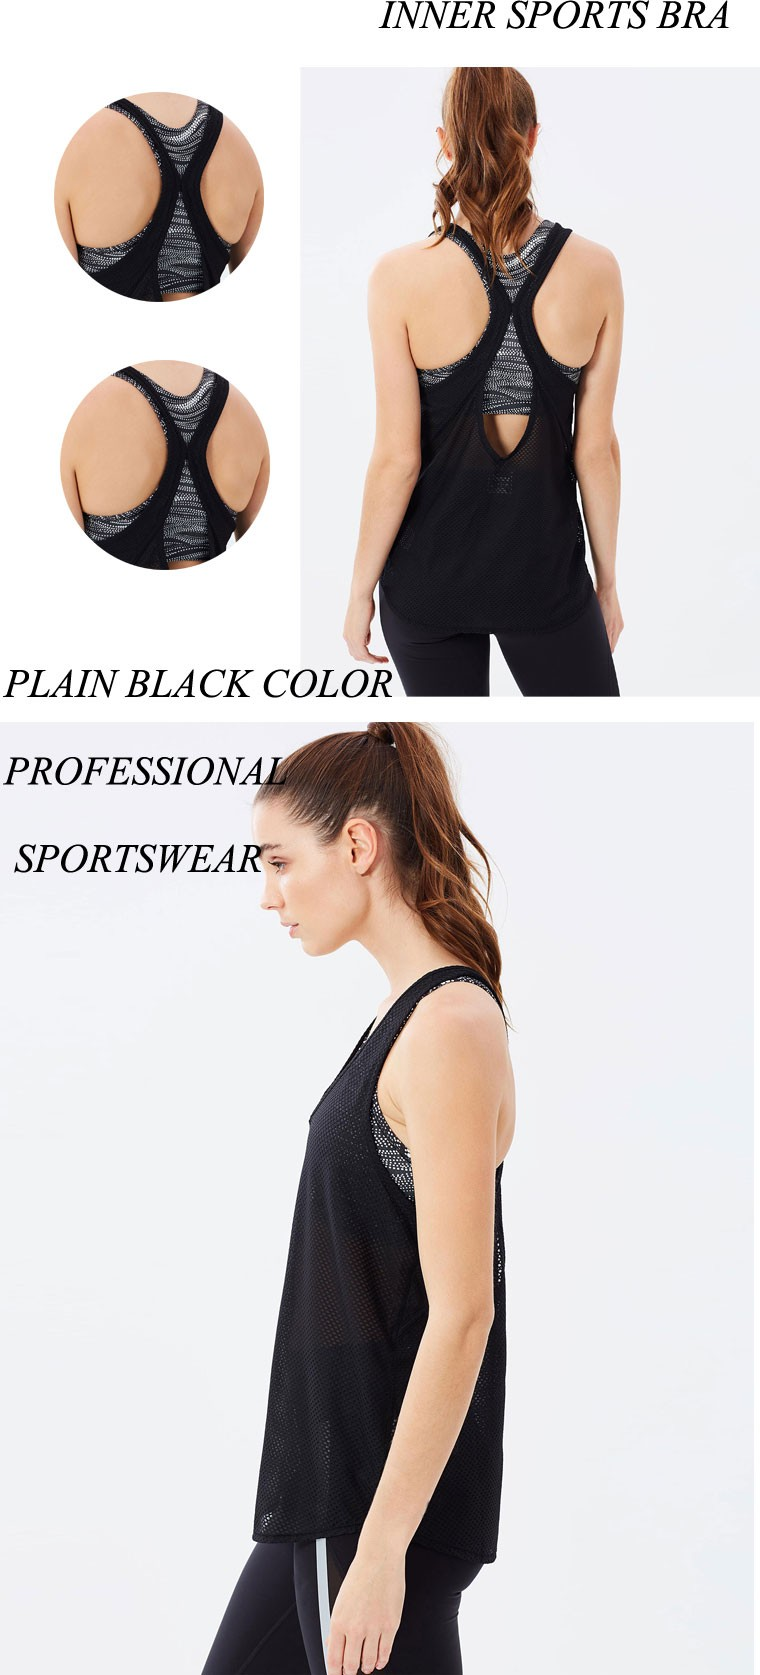 Supplex private label sexy custom brazilian women sexy athletic sport fitness yoga active gym wear clothing wholesale